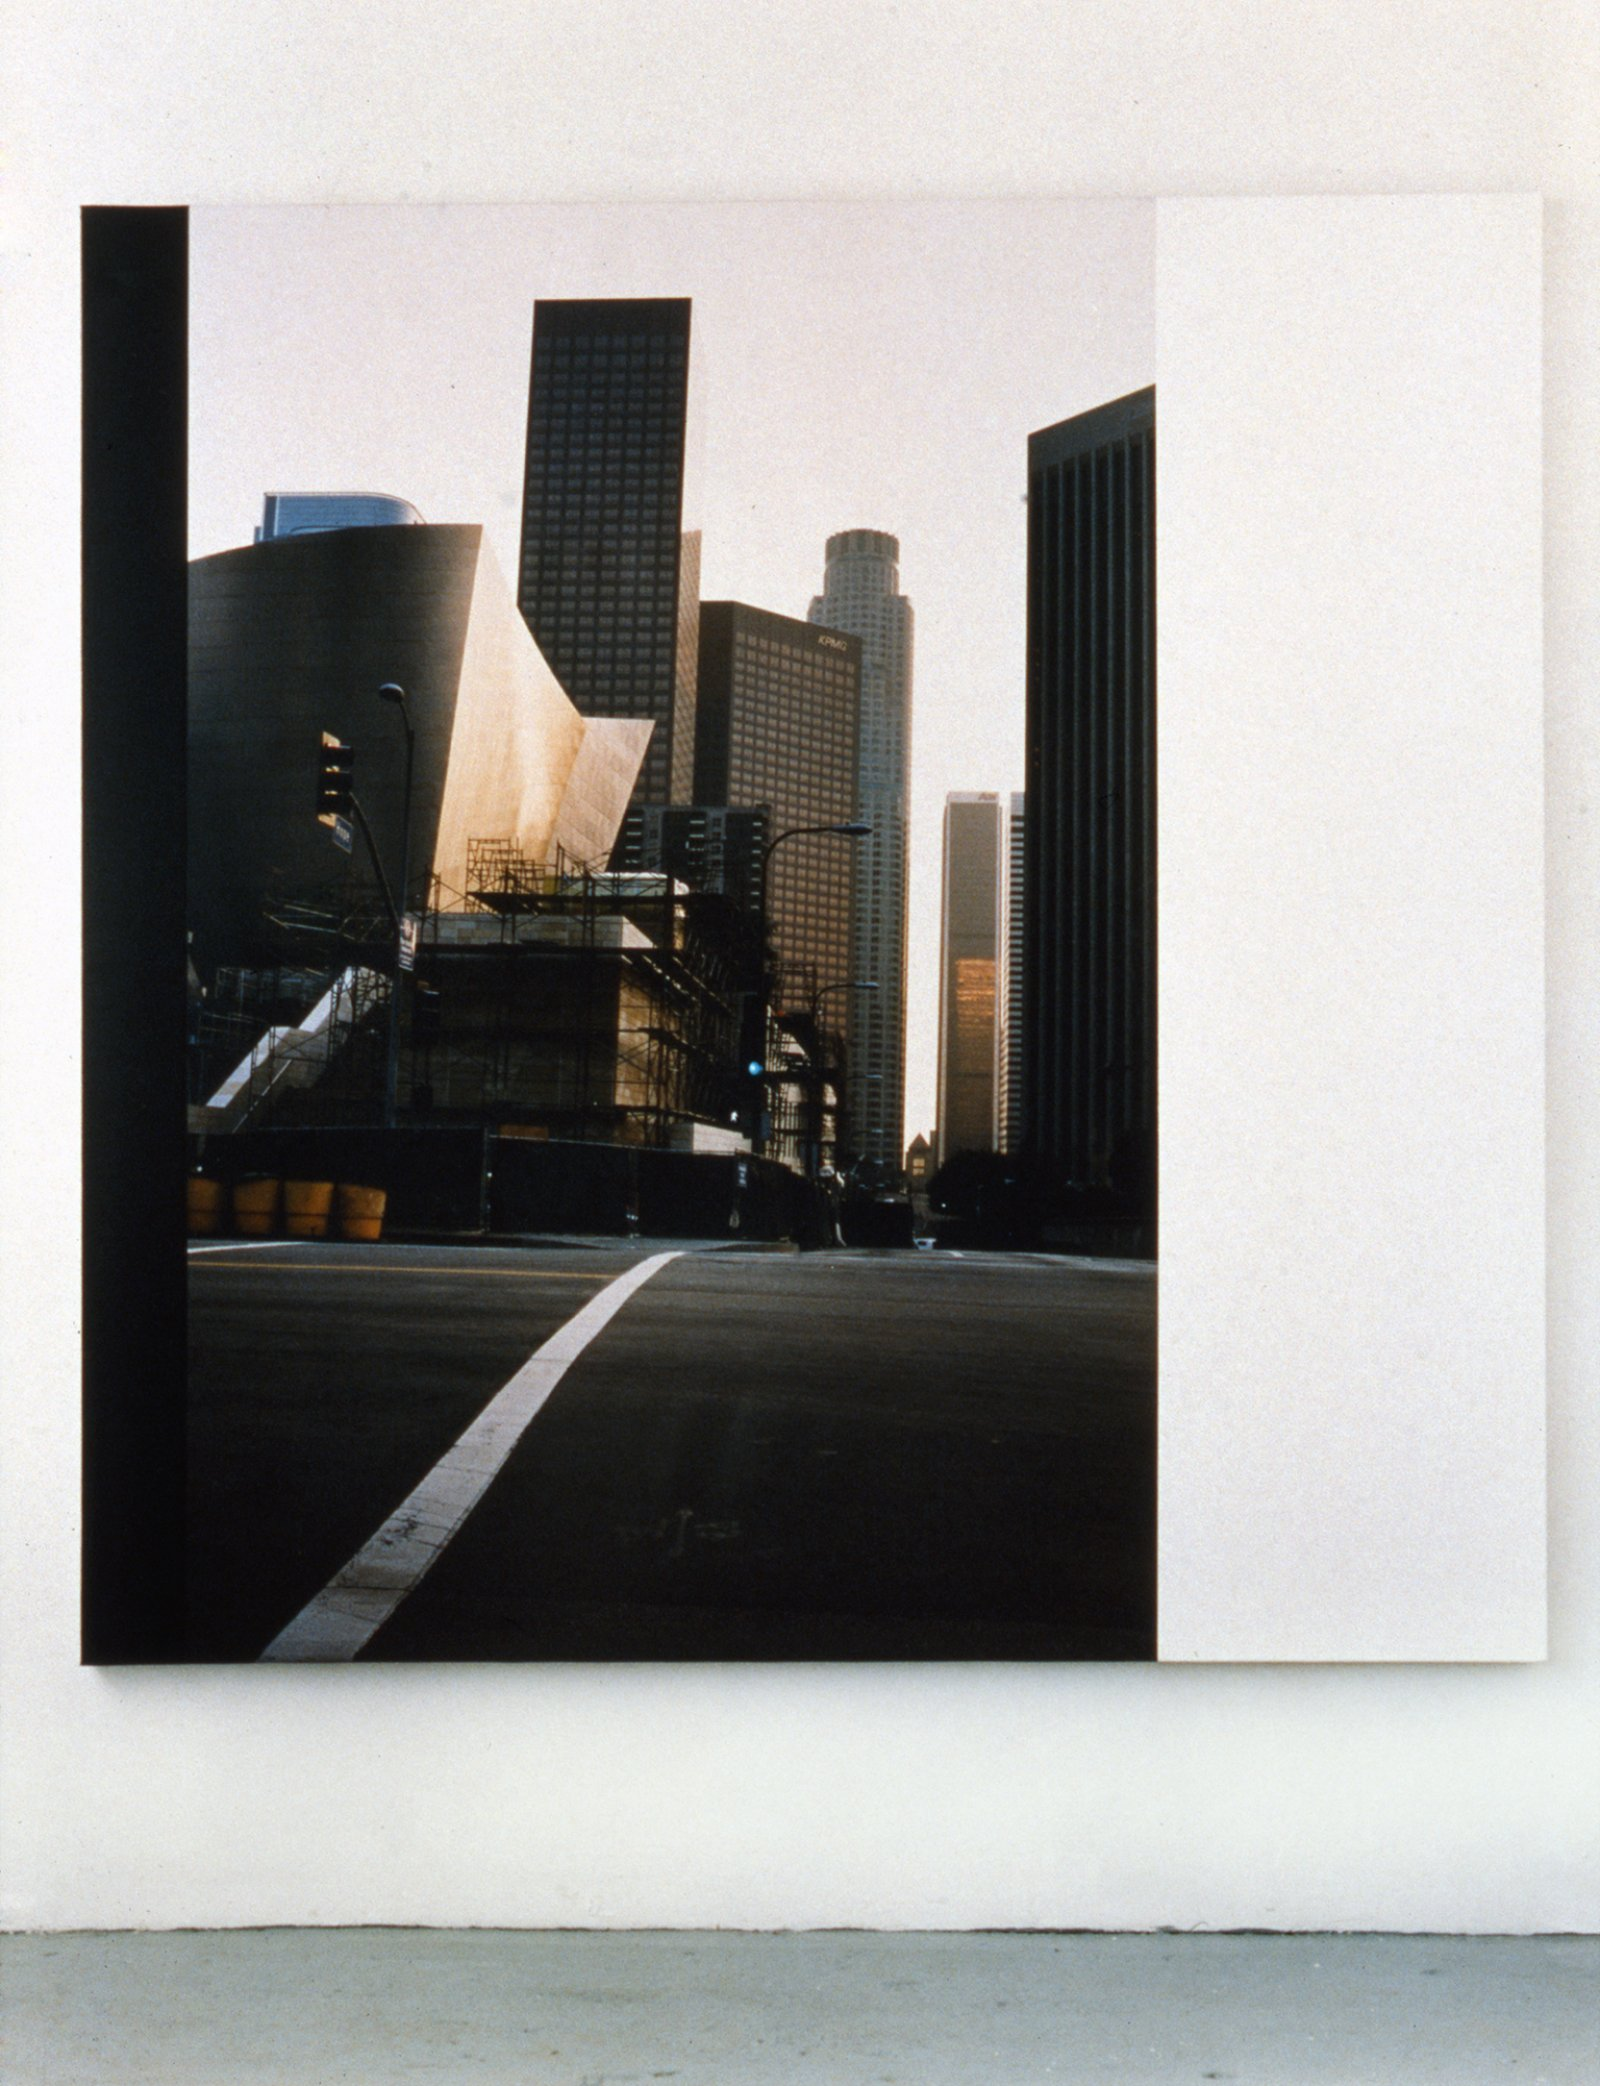 Ian Wallace,Construction Site LA IV, 2003, photolaminate and acrylic on canvas,72 x 72 in. (183 x 183cm)